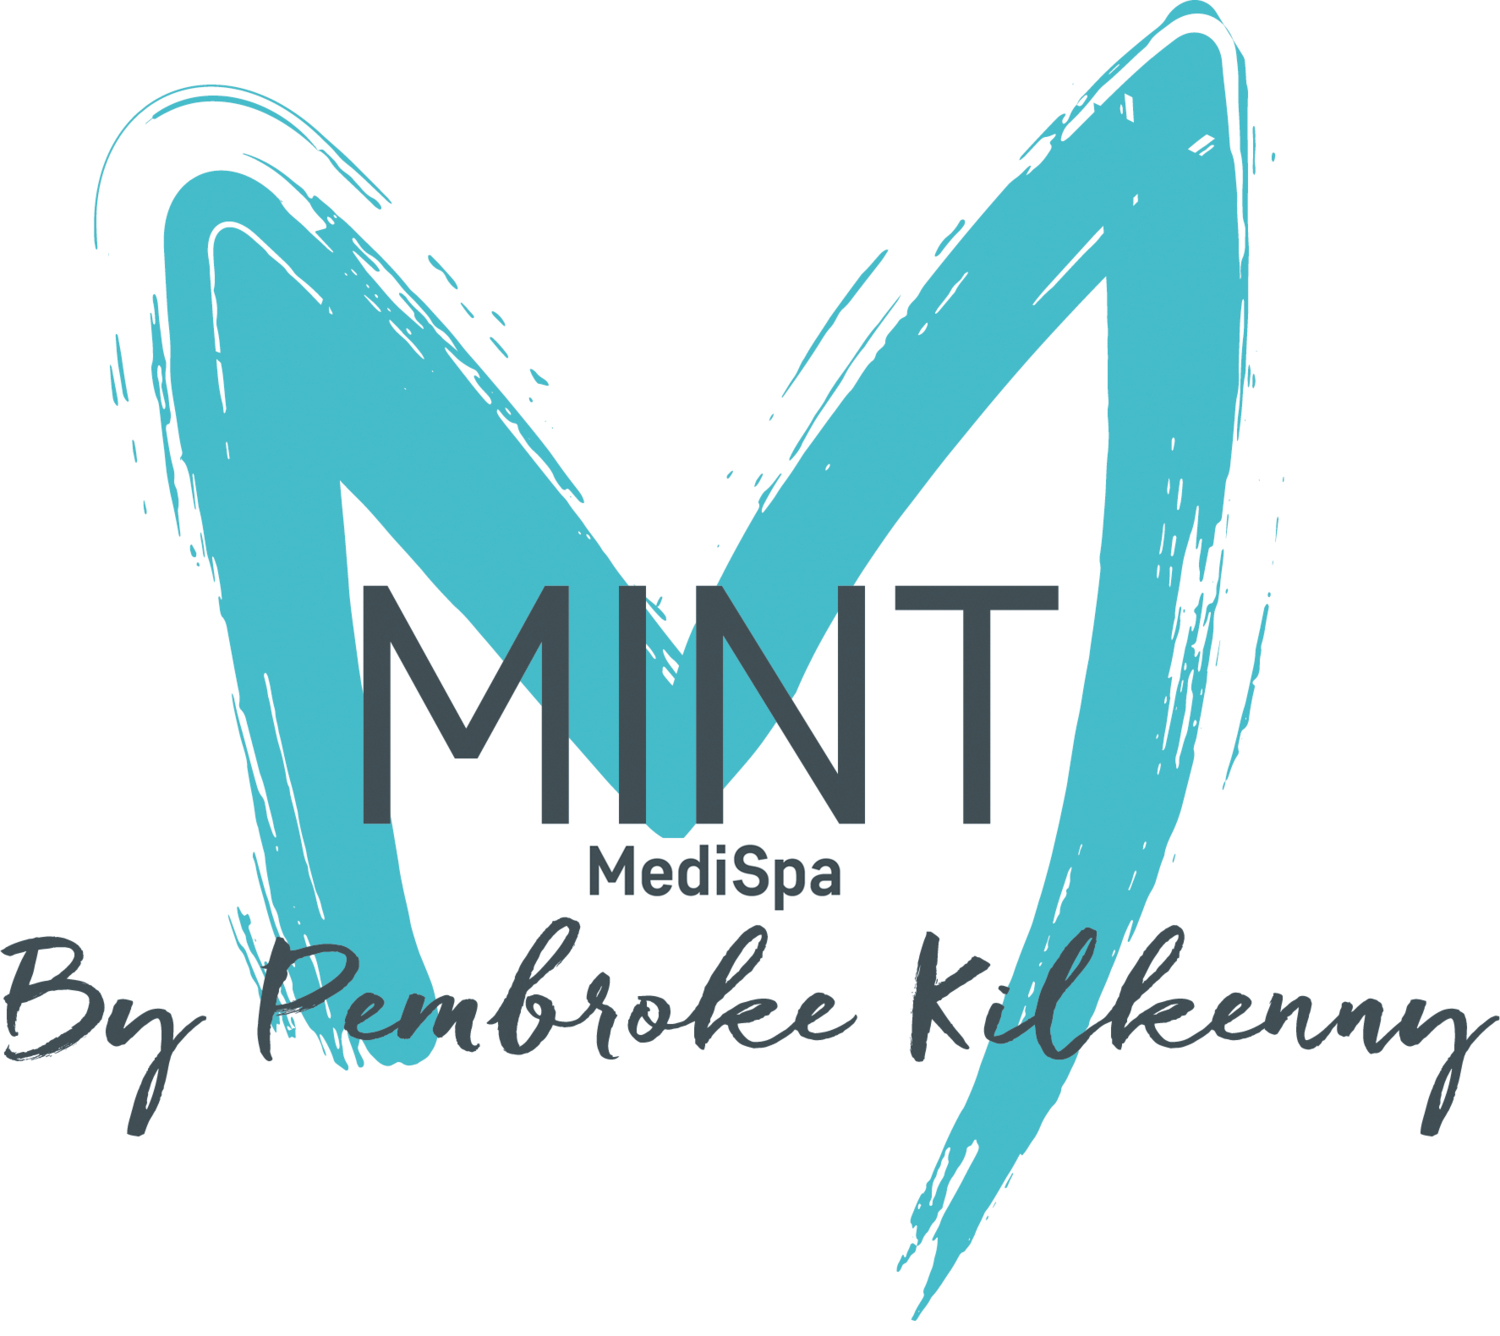 Mint Kilkenny: Skincare & Laser Hair Removal Treatment Specialists